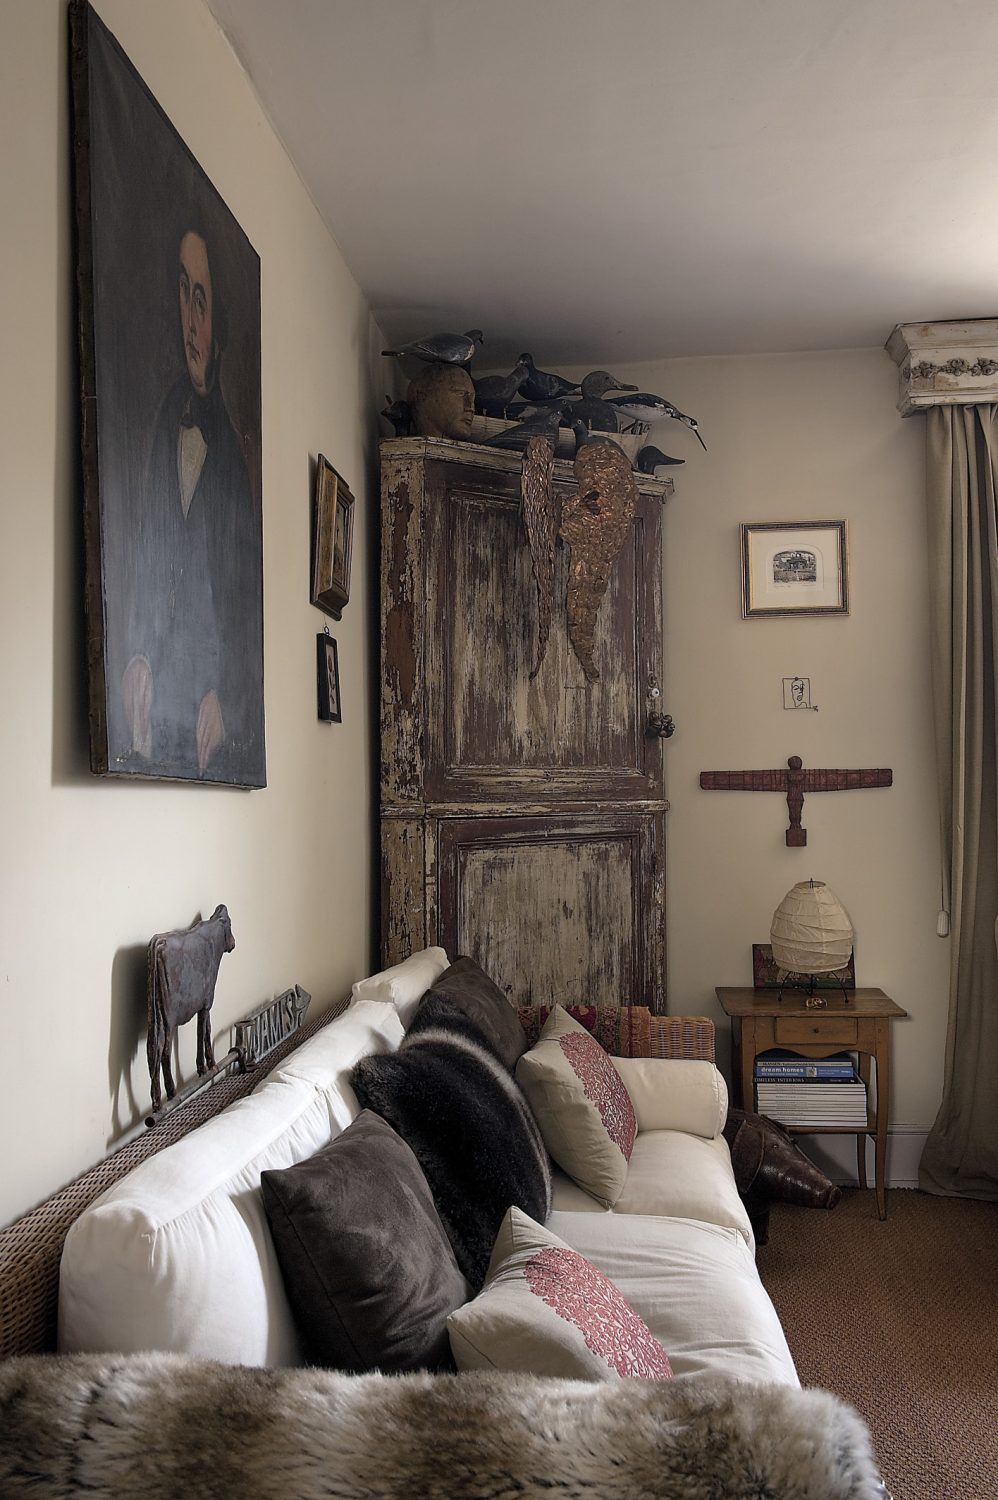 The original sitting room, home to a French corner unit upon which nests a collection of antique shooting decoys